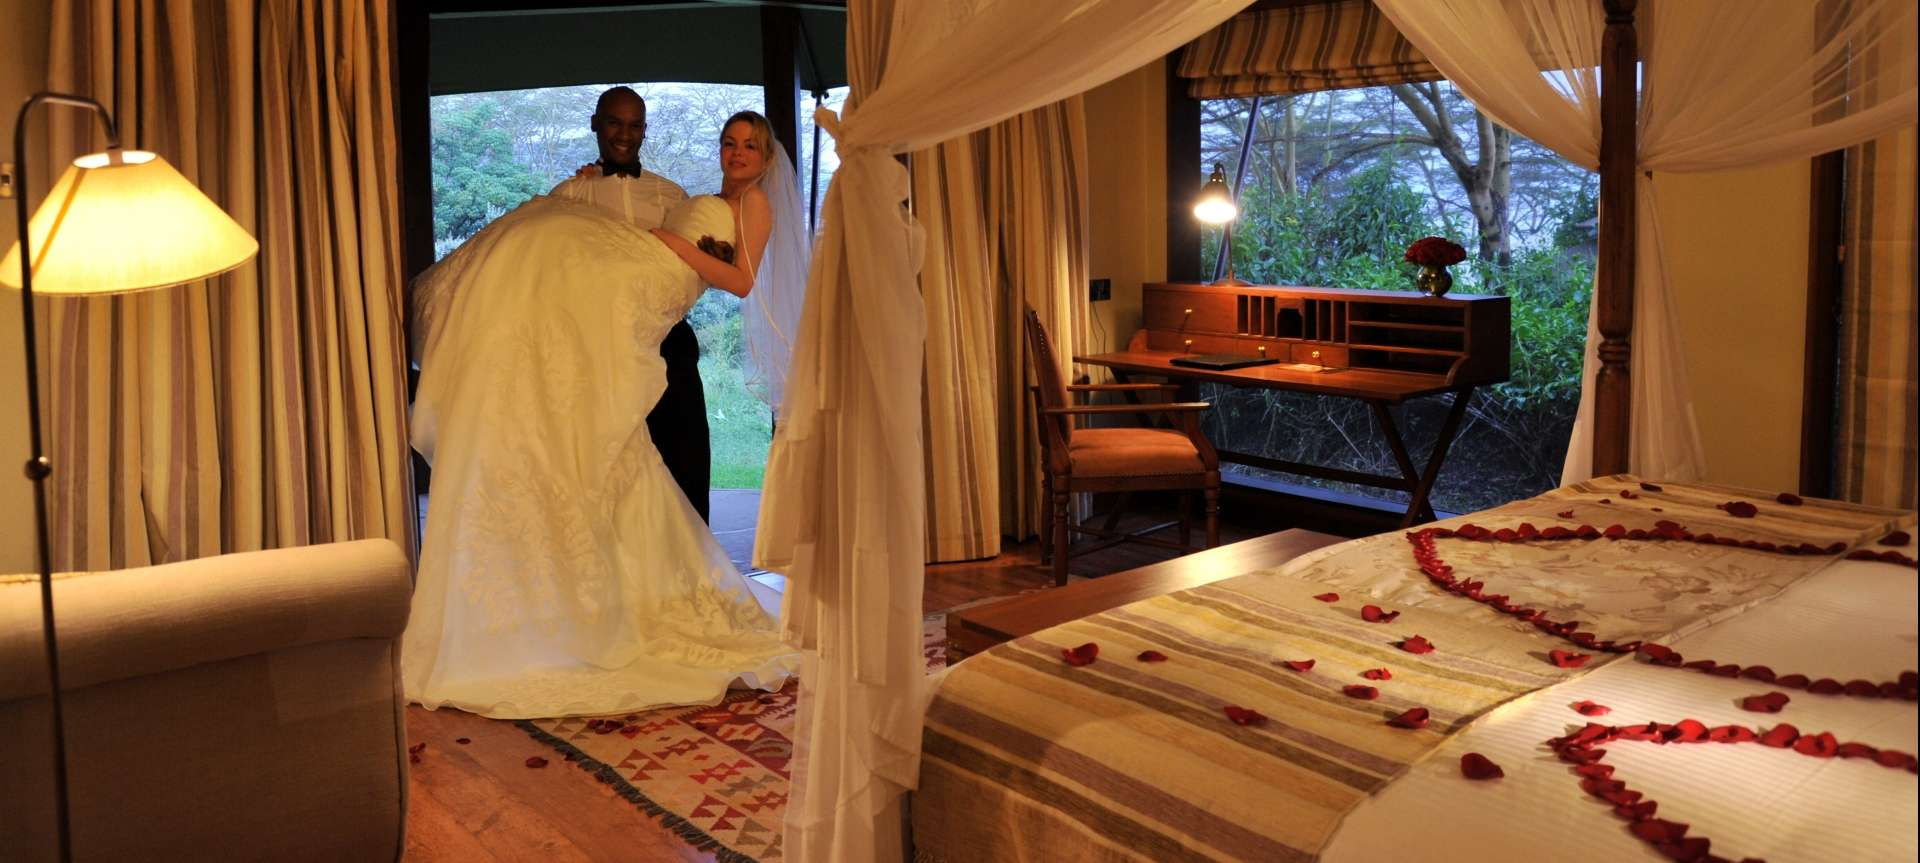 Honeymoons in Africa - Africa Wildlife Safaris